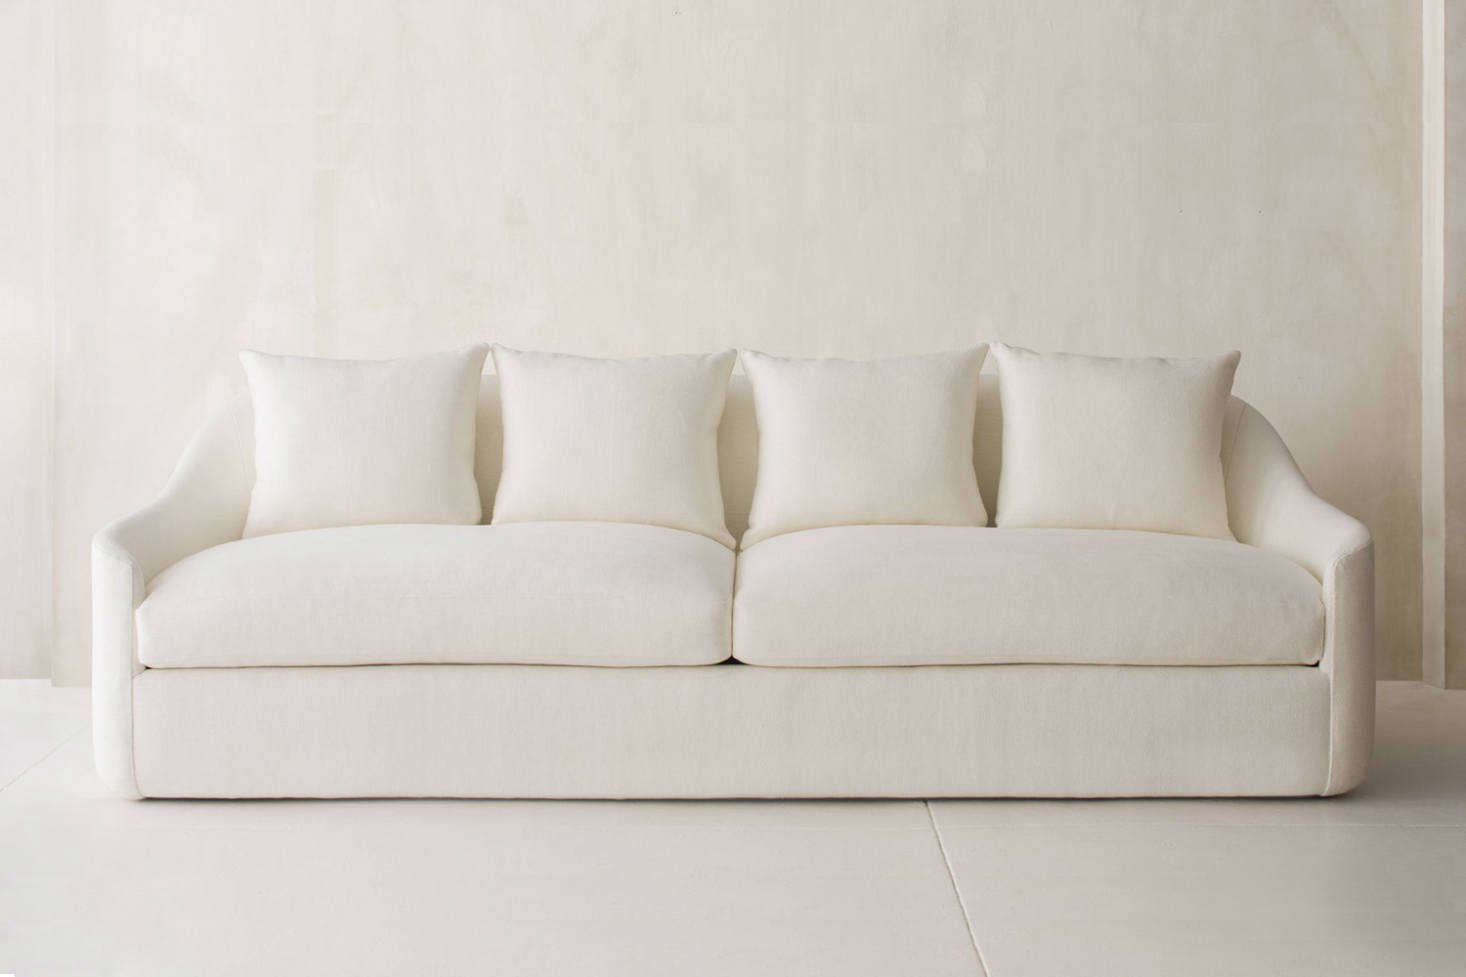 10 Easy Pieces: The Perfect High-End Luxury Sofa - Remodelista